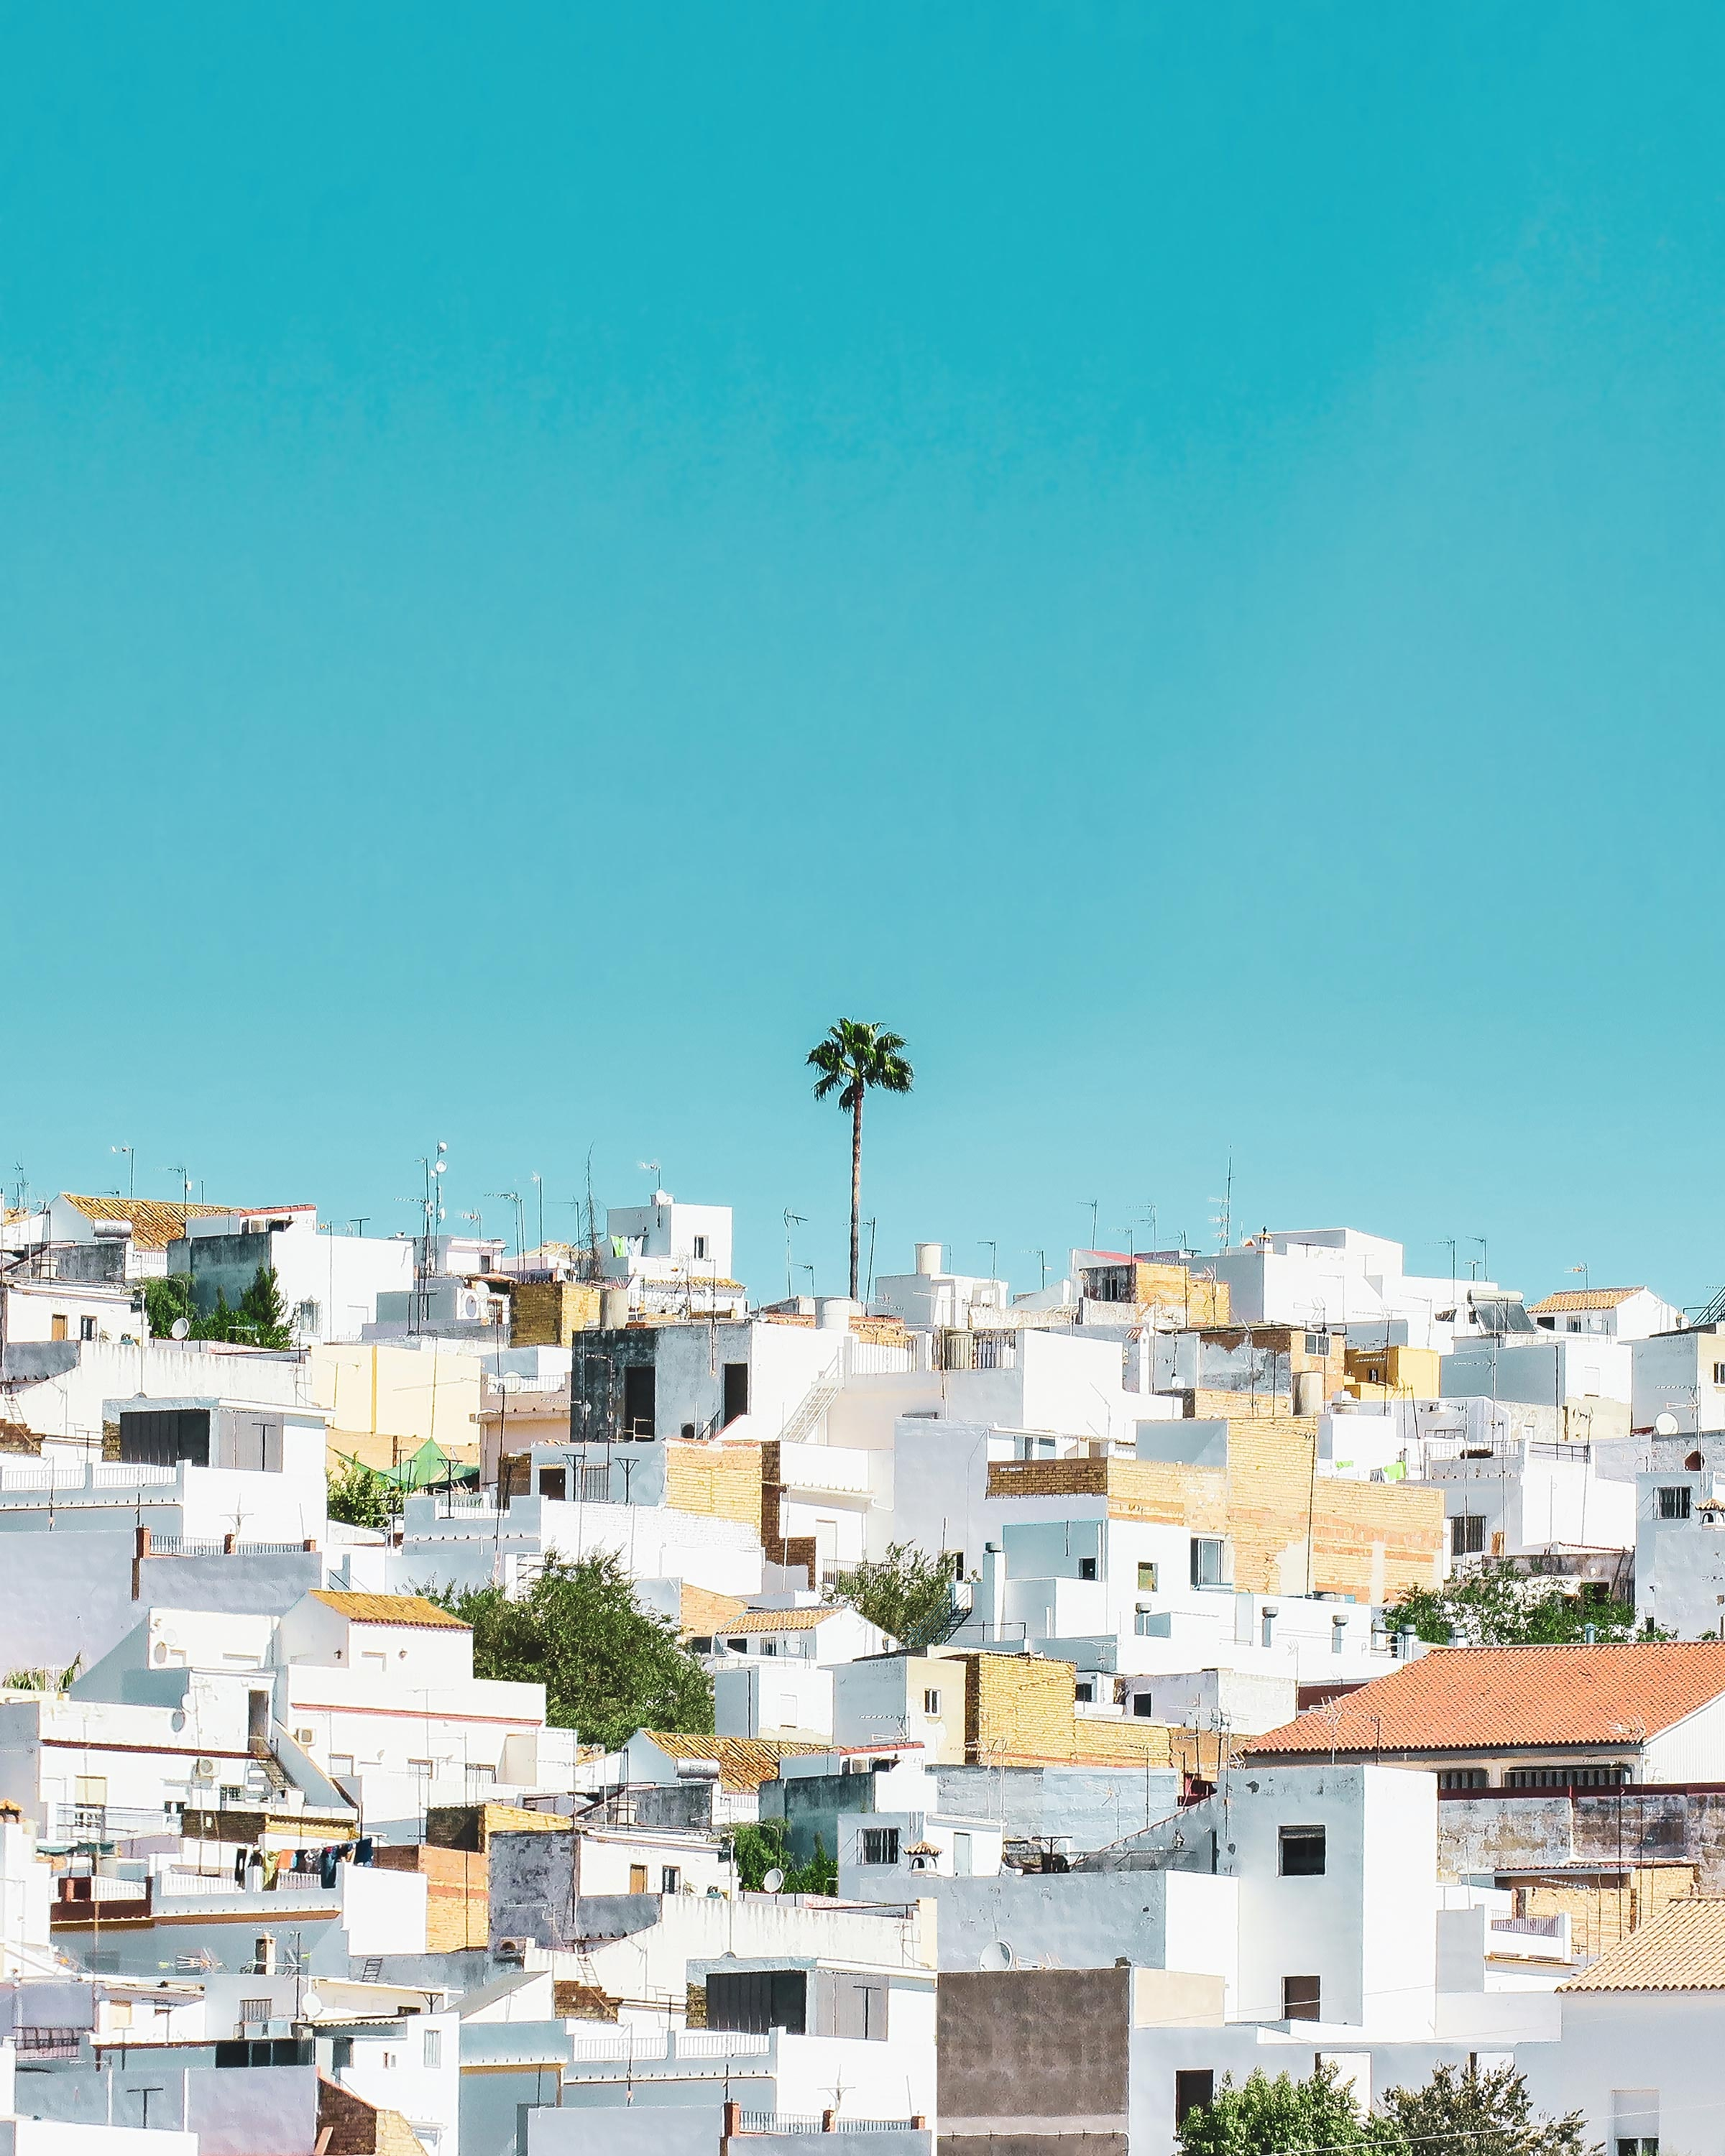 white and brown concrete houses under blue sky during daytime